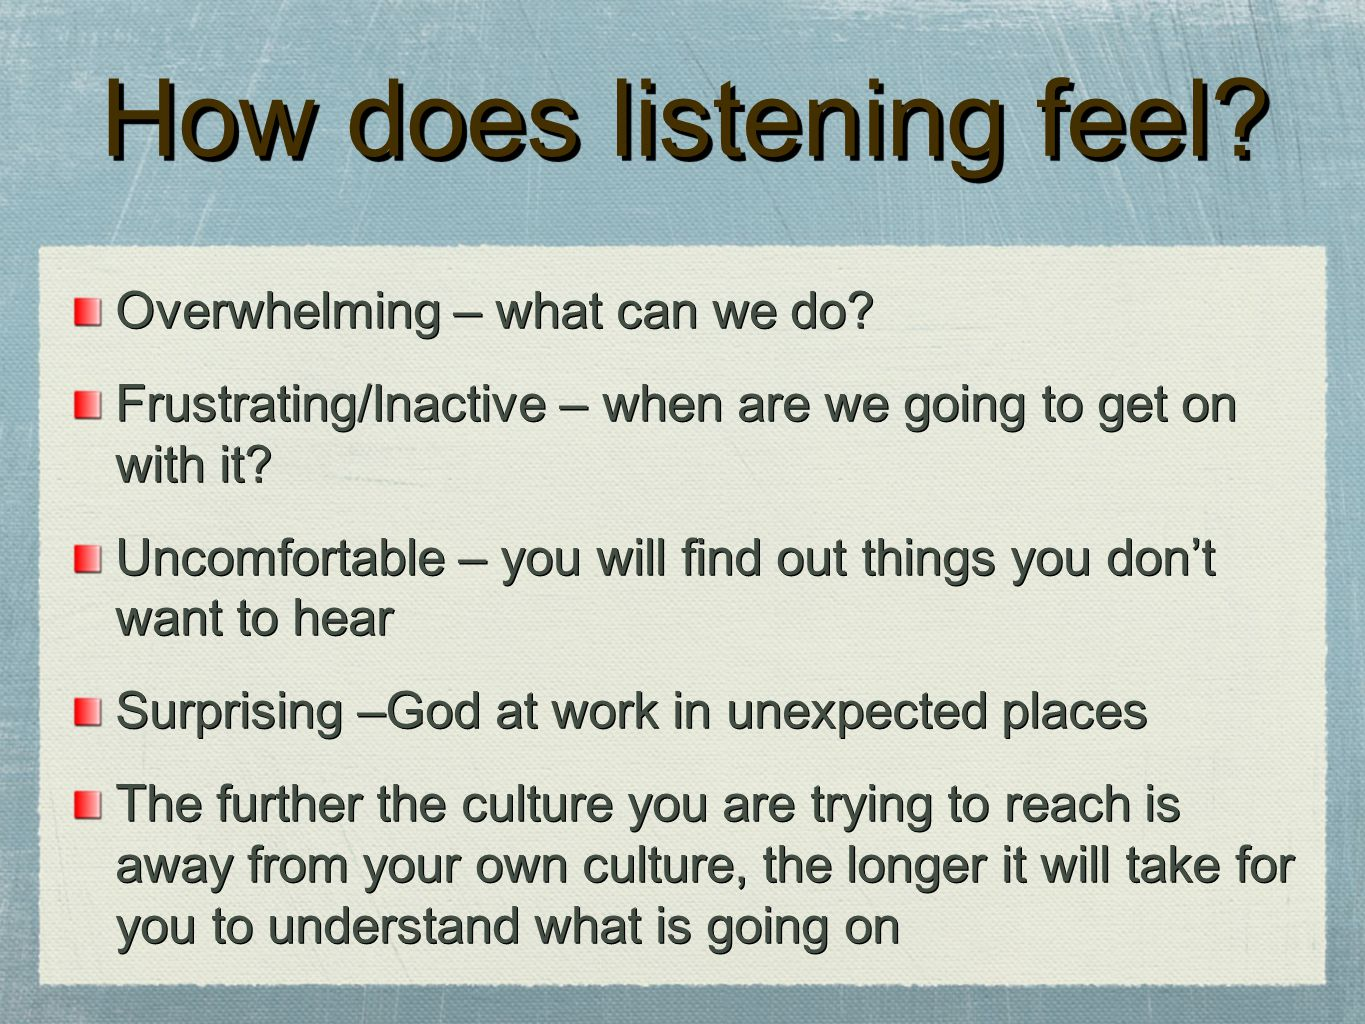 How does listening feel